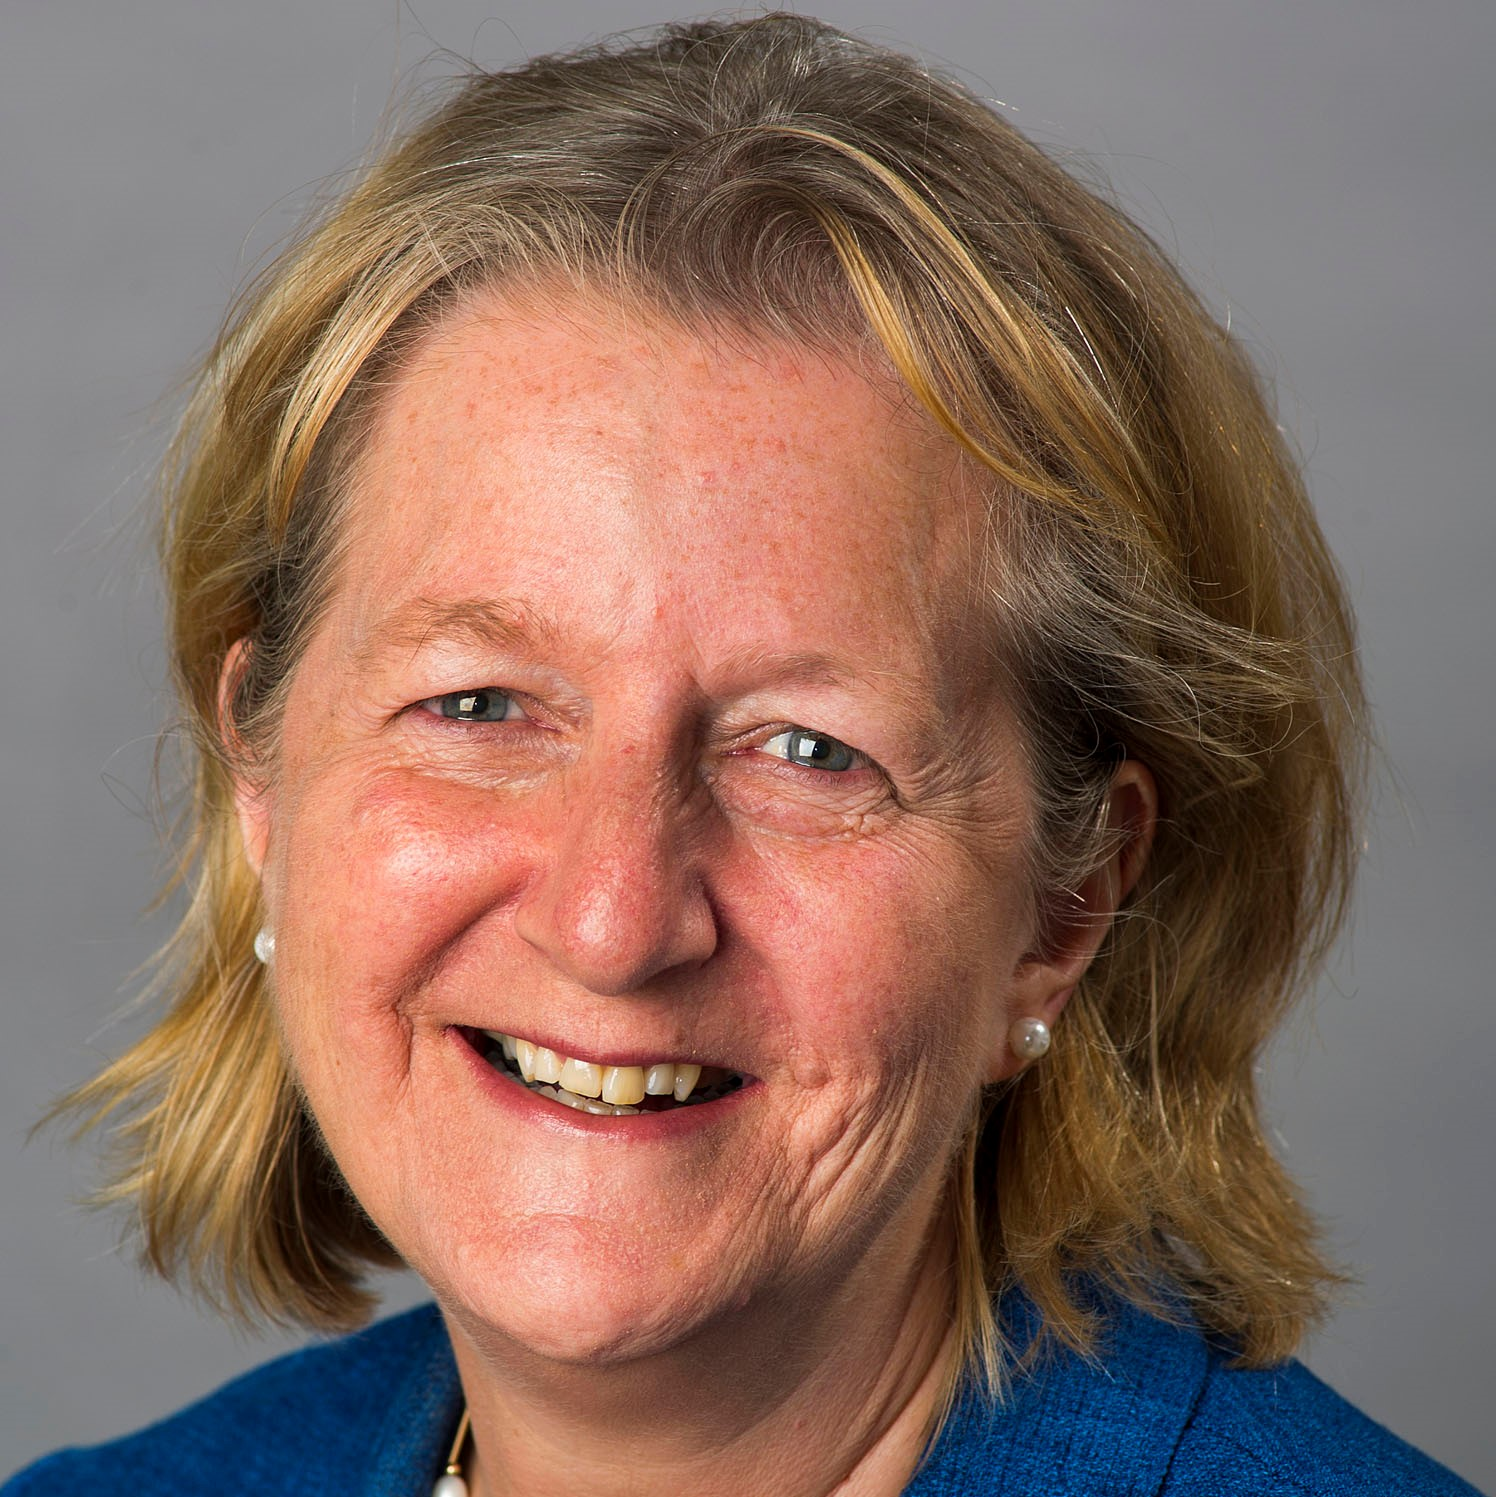 Cllr Ruth Dombey